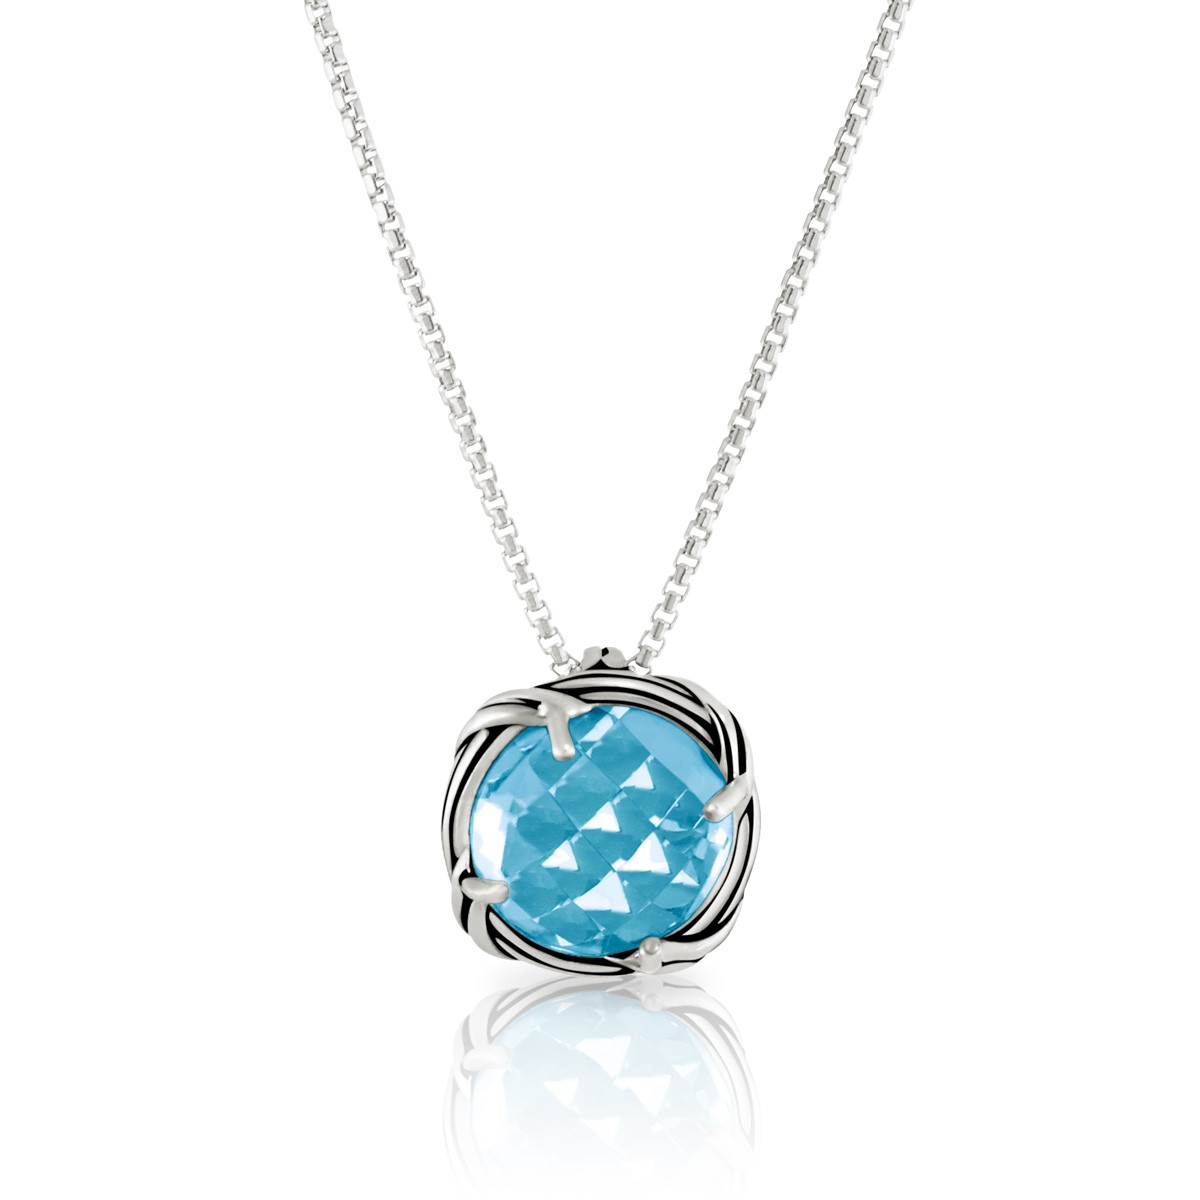 Fantasies Blue Topaz Necklace in sterling silver 10mm